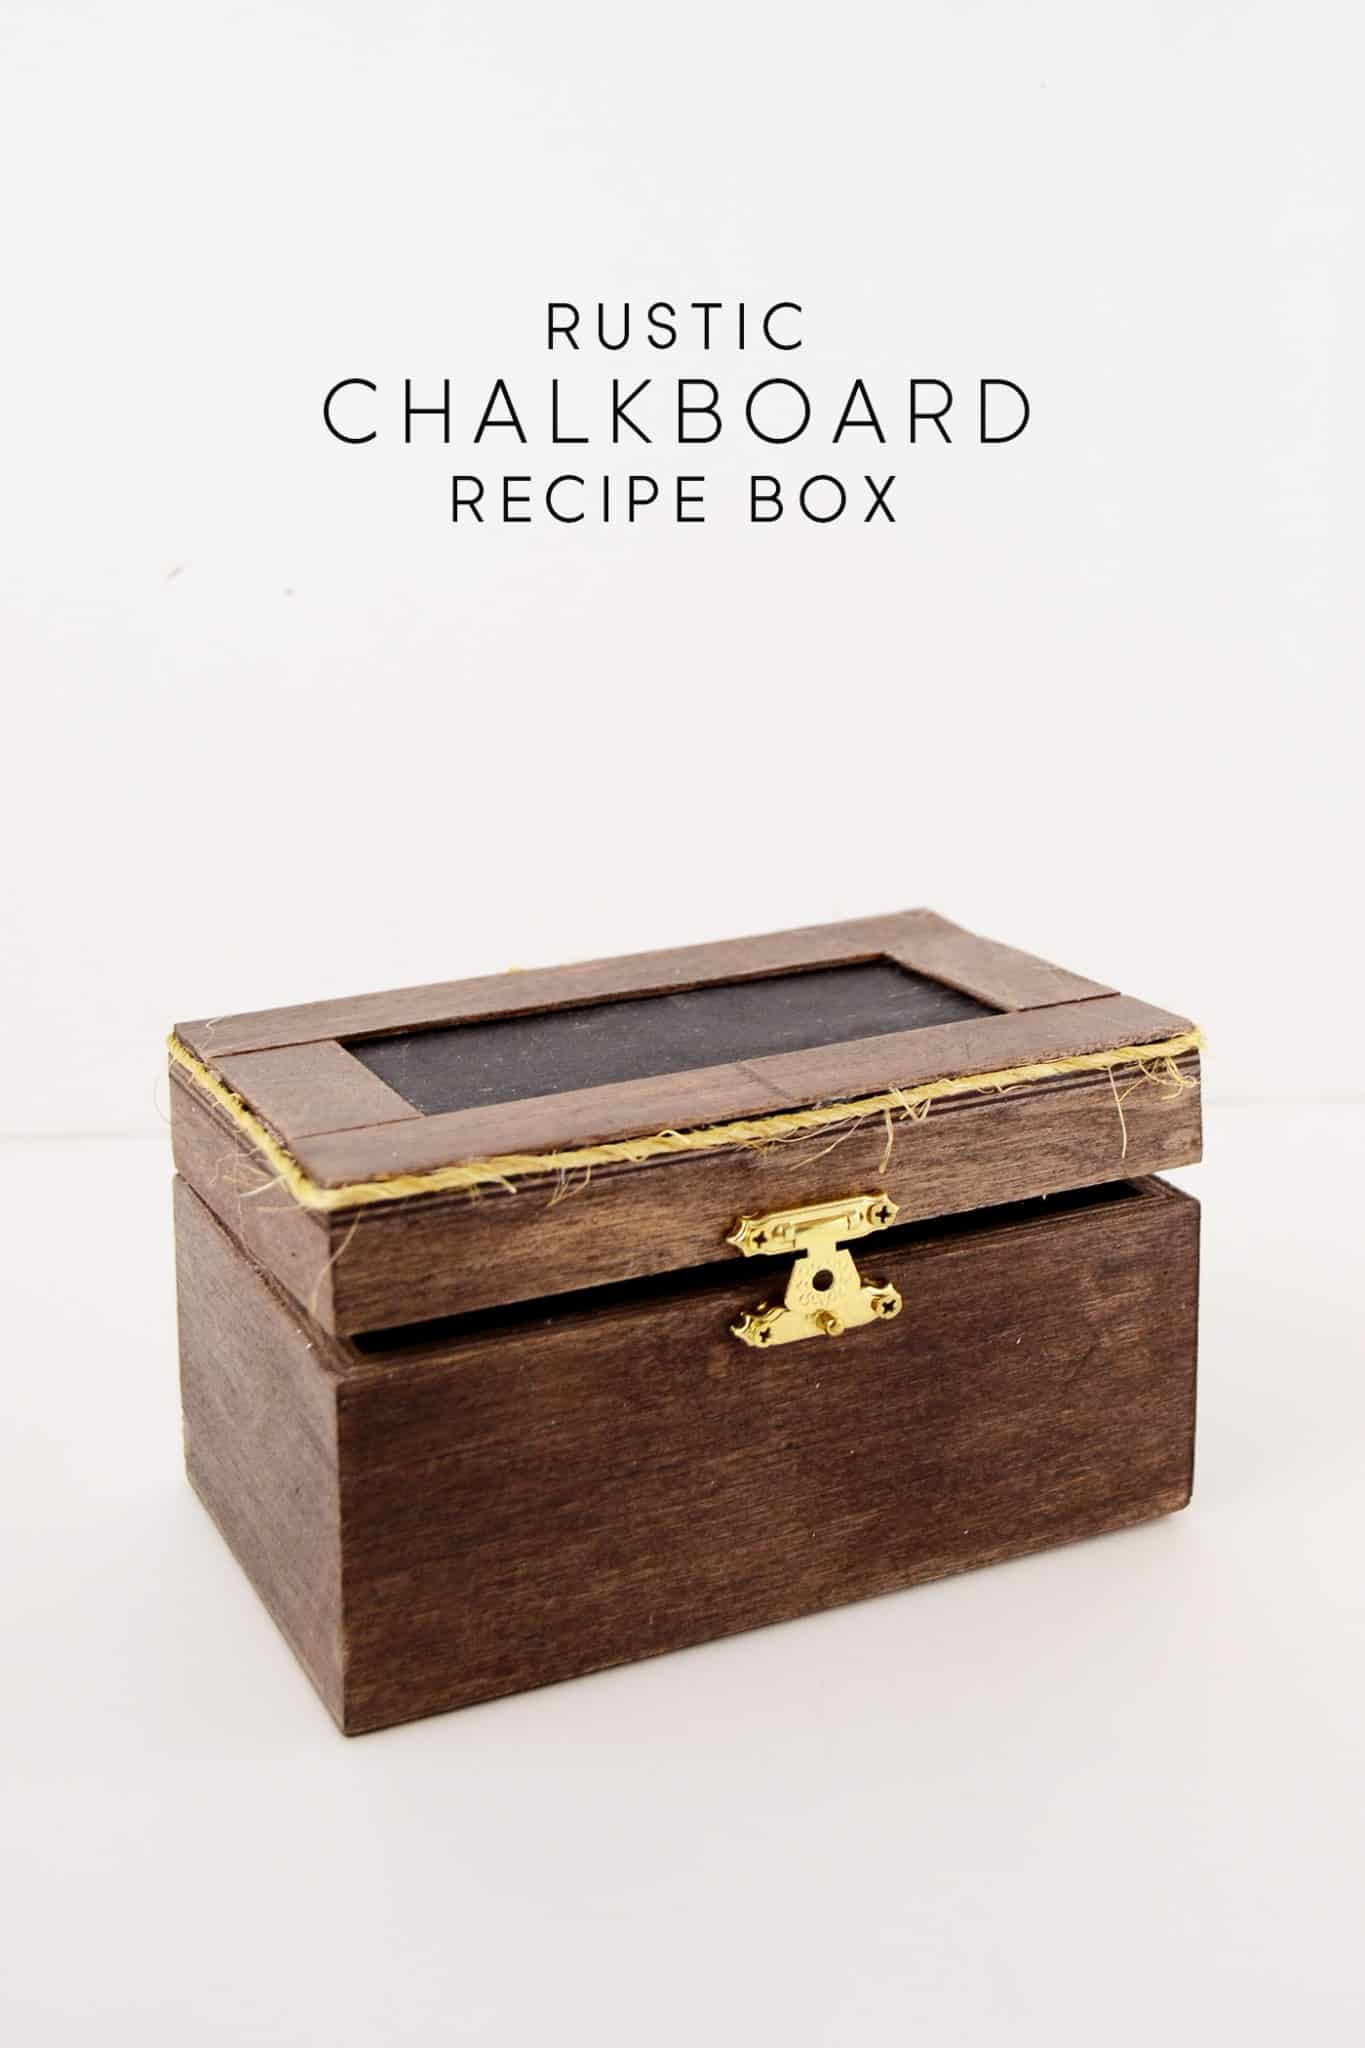 Store all of your treasured recipes in this unique, rustic themed DIY chalkboard recipe box! It's easy to make and perfect for gifting.